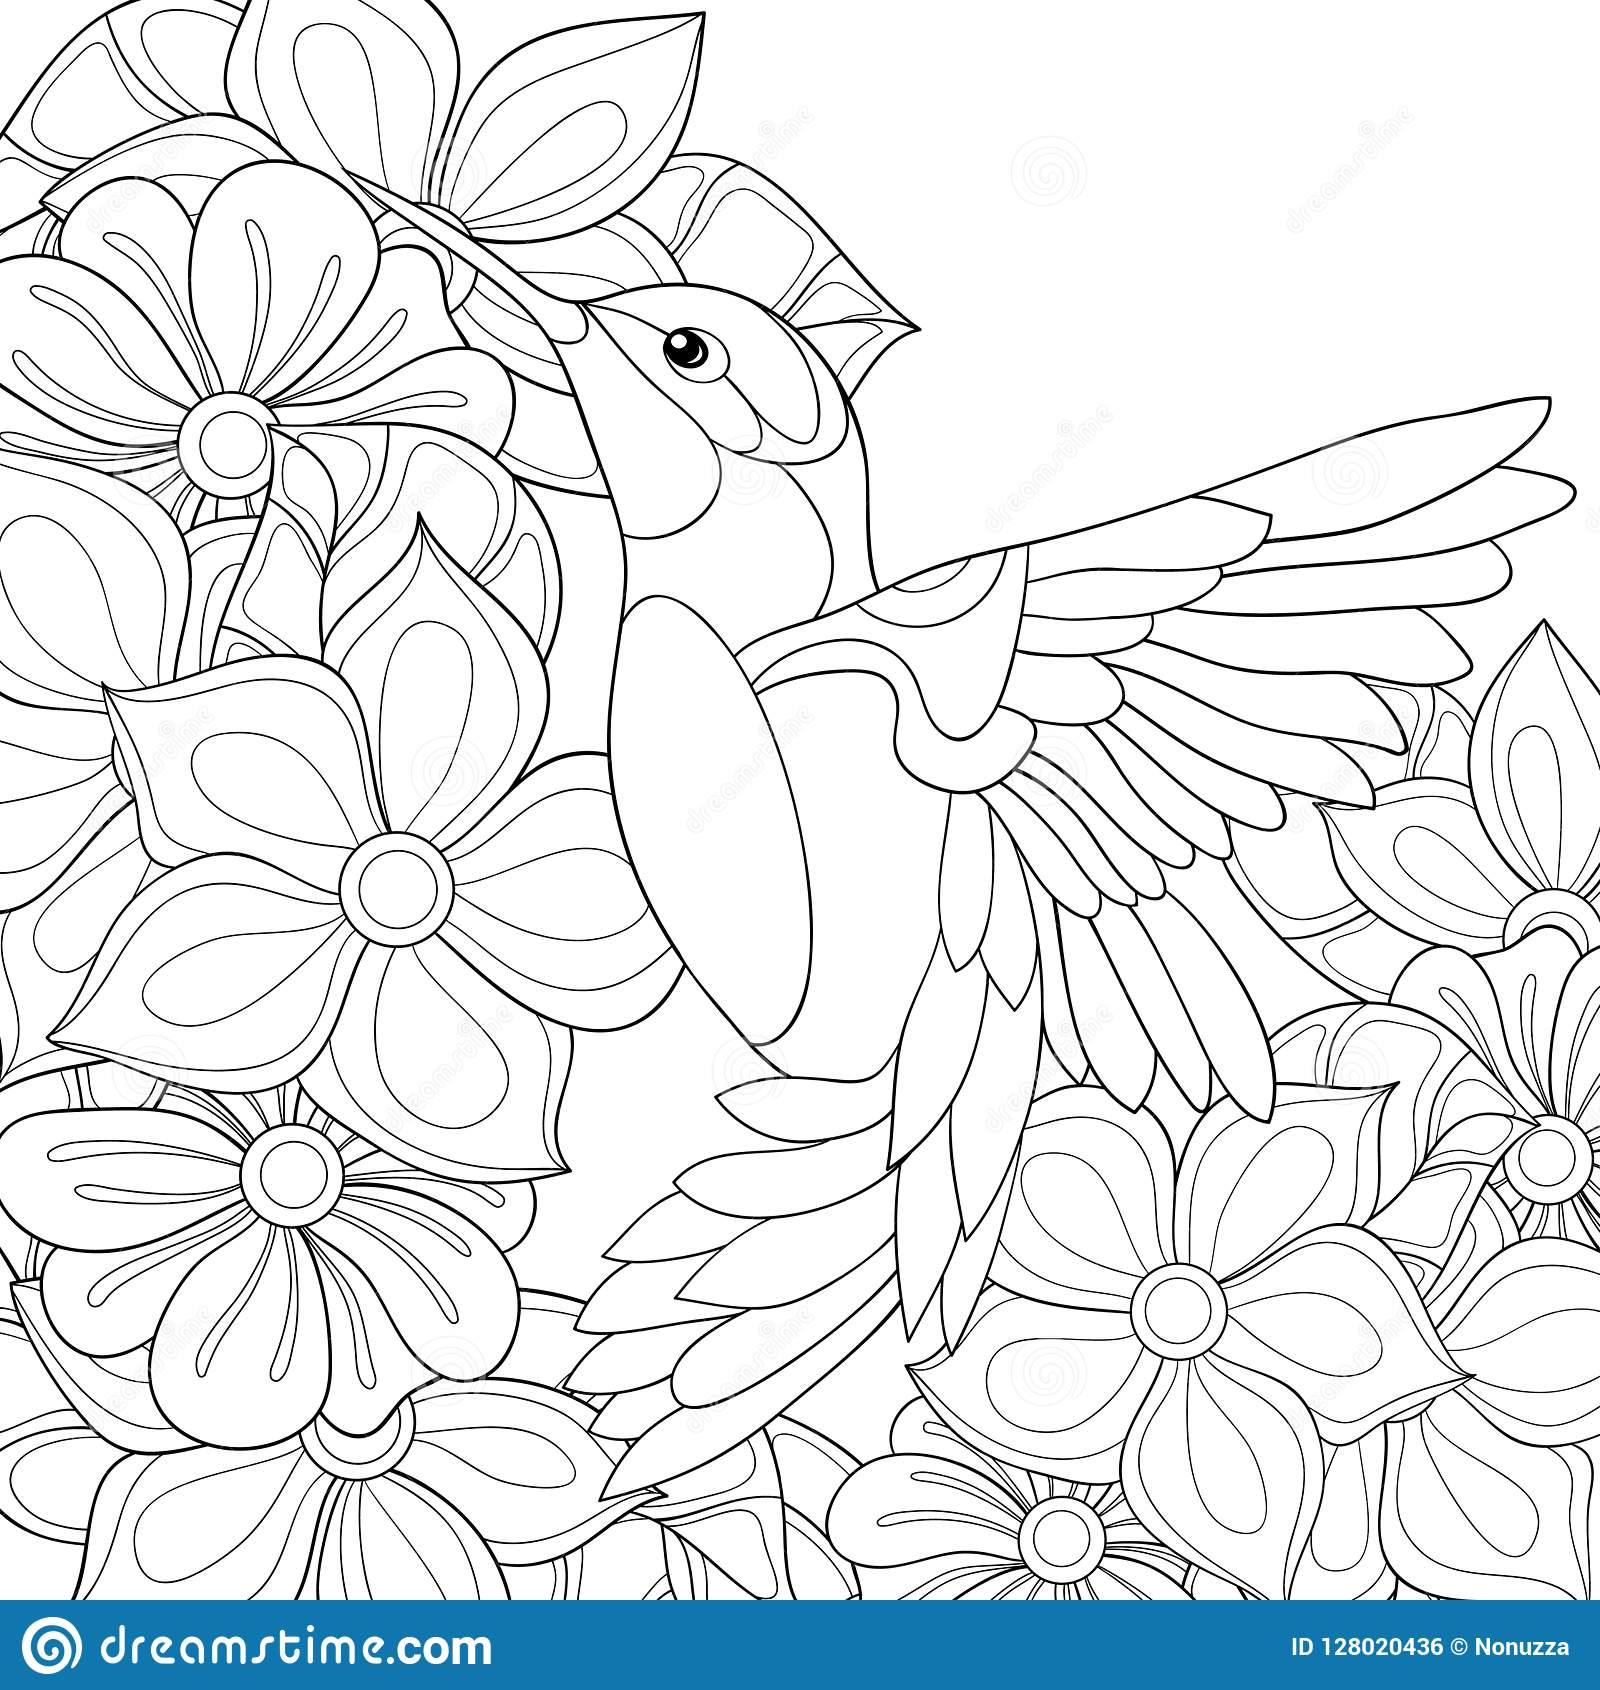 Adult Coloring Page Book A Bird Image For Relaxing Stock Vector Illustration Of Decoration Activity 128020436